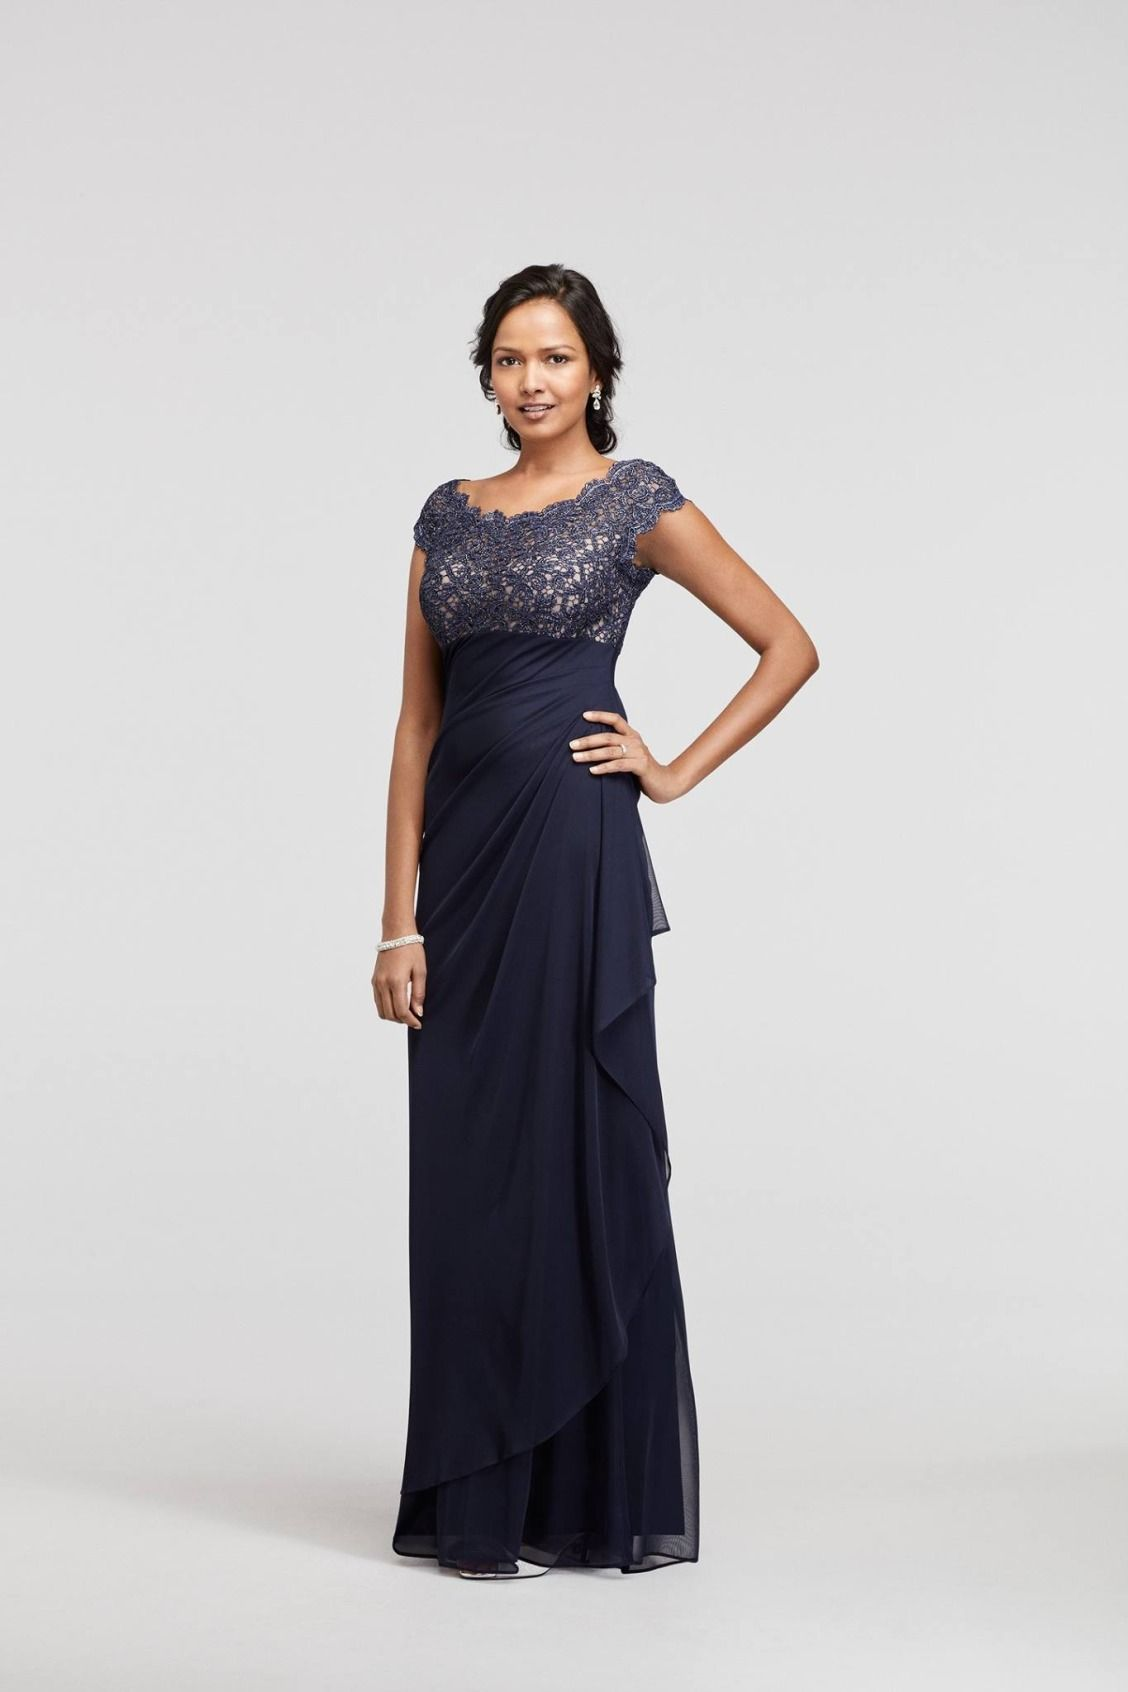 Navy long mesh dress with cap sleeves and lace bodice mother of navy long mesh dress with cap sleeves and lace bodice mother of the bride dresses ombrellifo Gallery